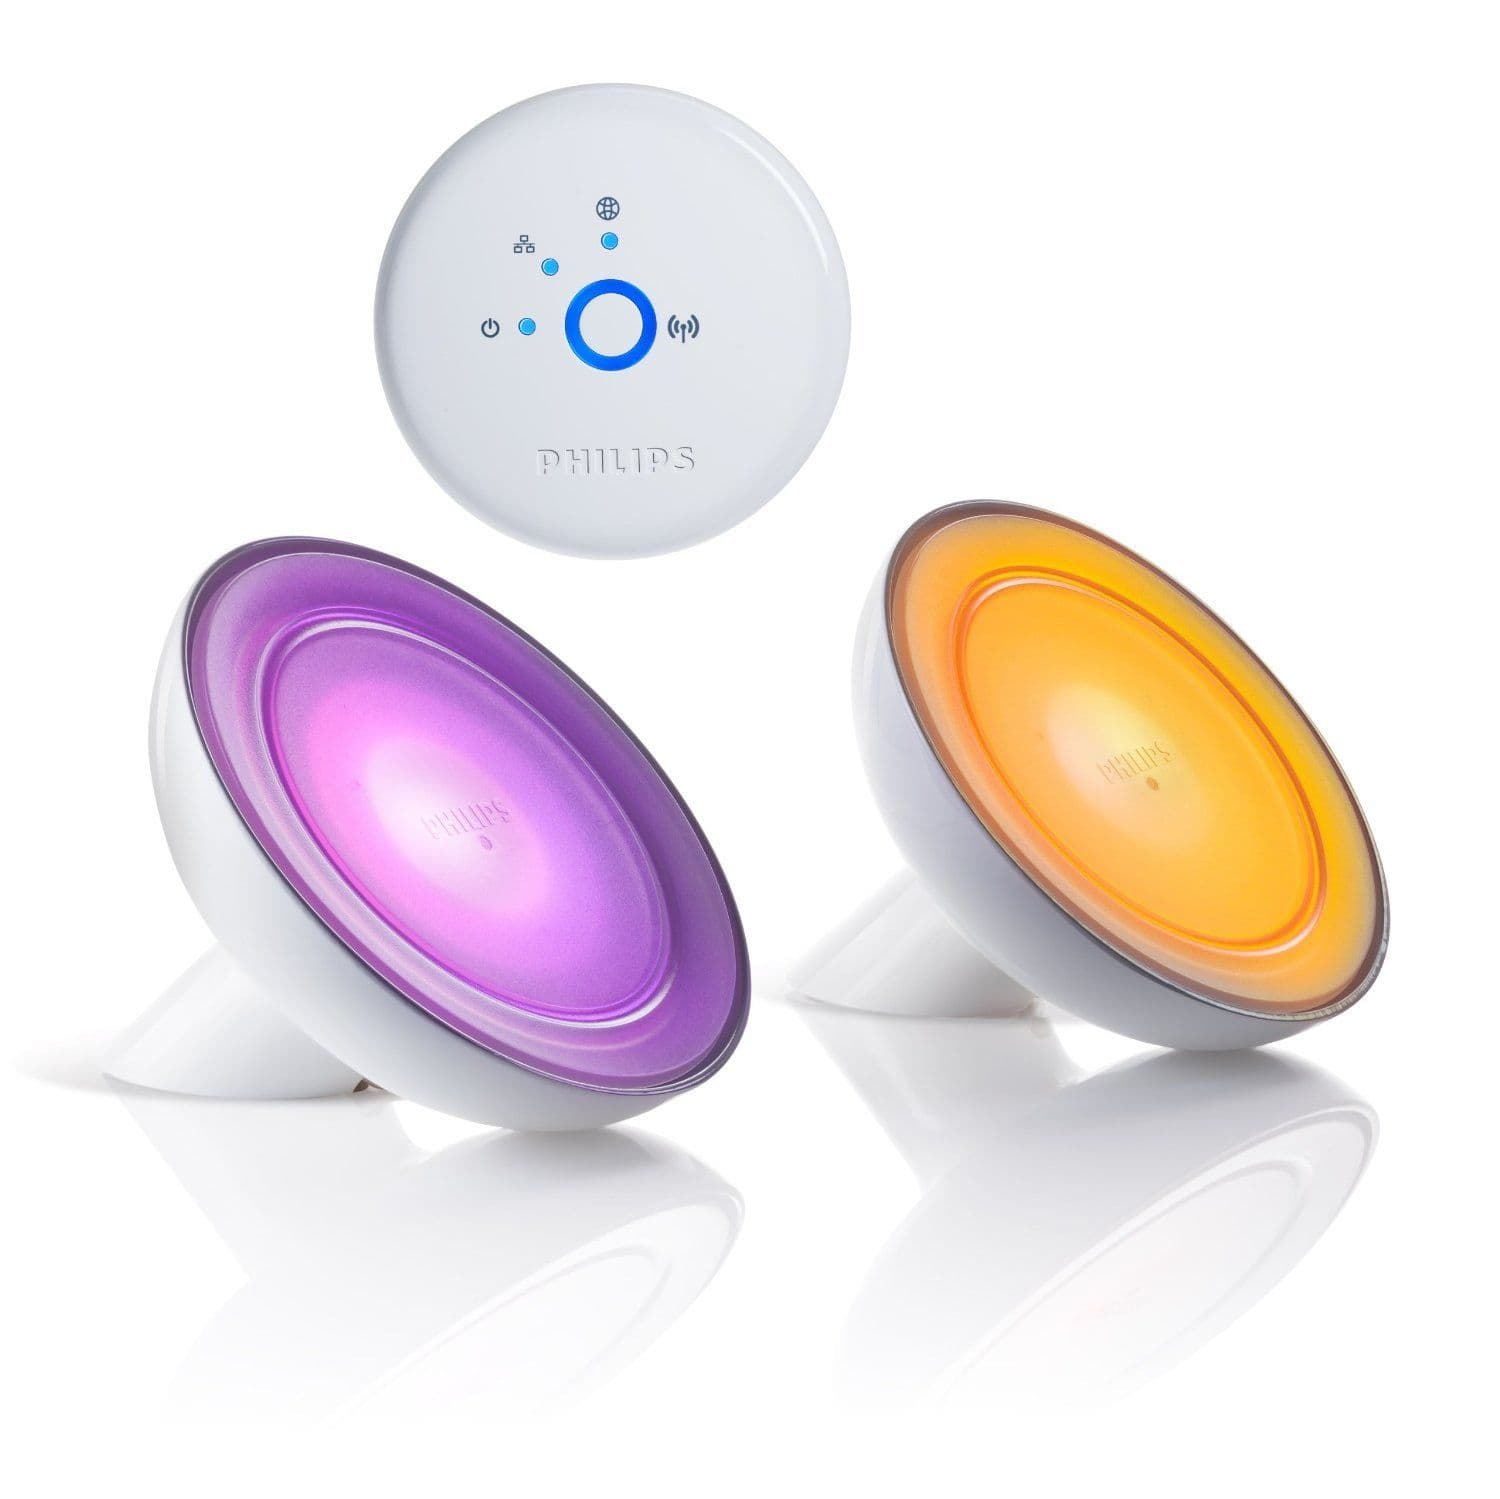 Philips  Friends of Hue Personal Wireless Lighting Bloom Starter Pack $85 AC + Free Shipping (eBay Daily Deal) *Lower Price*